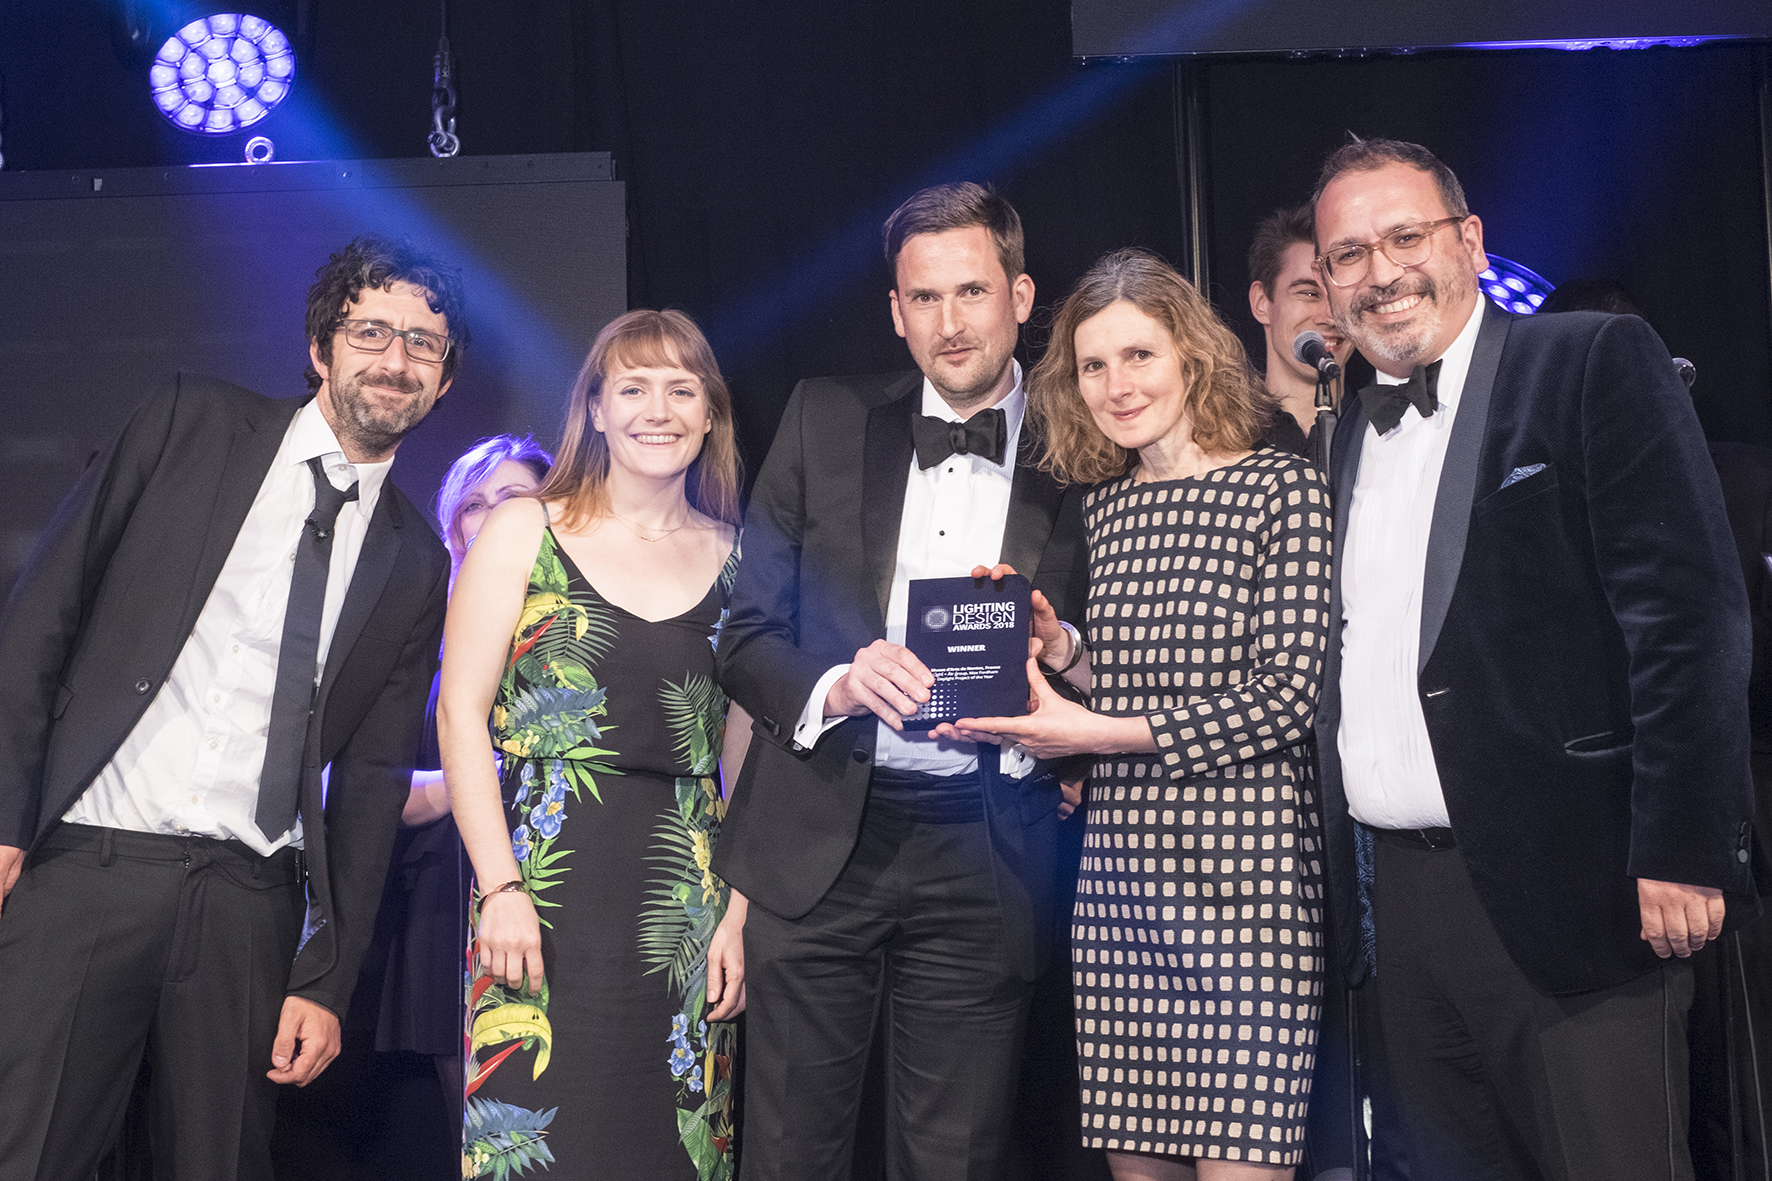 The Lighting Design Award being presented to Nick Cramp (Head of Max Fordham Light + Air group), Hazel Selby (Lighting Consultant at Max Fordham) and Anne Fehrenbach (Architect at Stanton Williams)